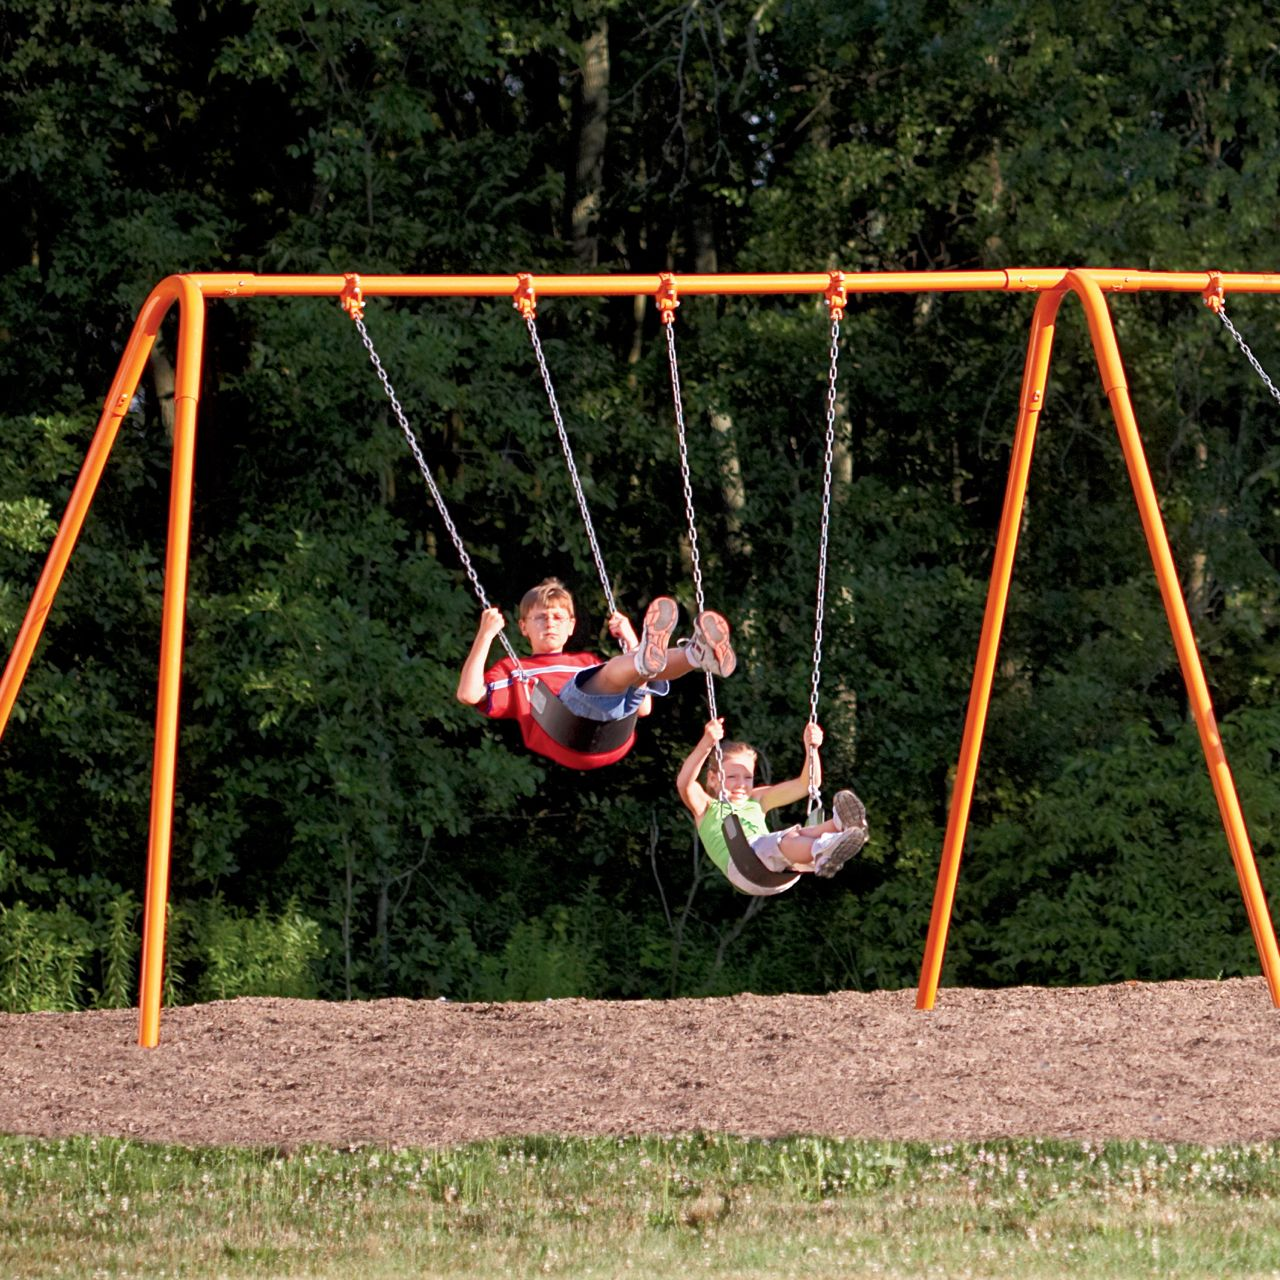 Bedrosian Park moreover Culpeo together with Mcallister Park Sa2020 Resolutions likewise 6 likewise Playdesigns Bipod Swing 10 Foot. on dog park equipment